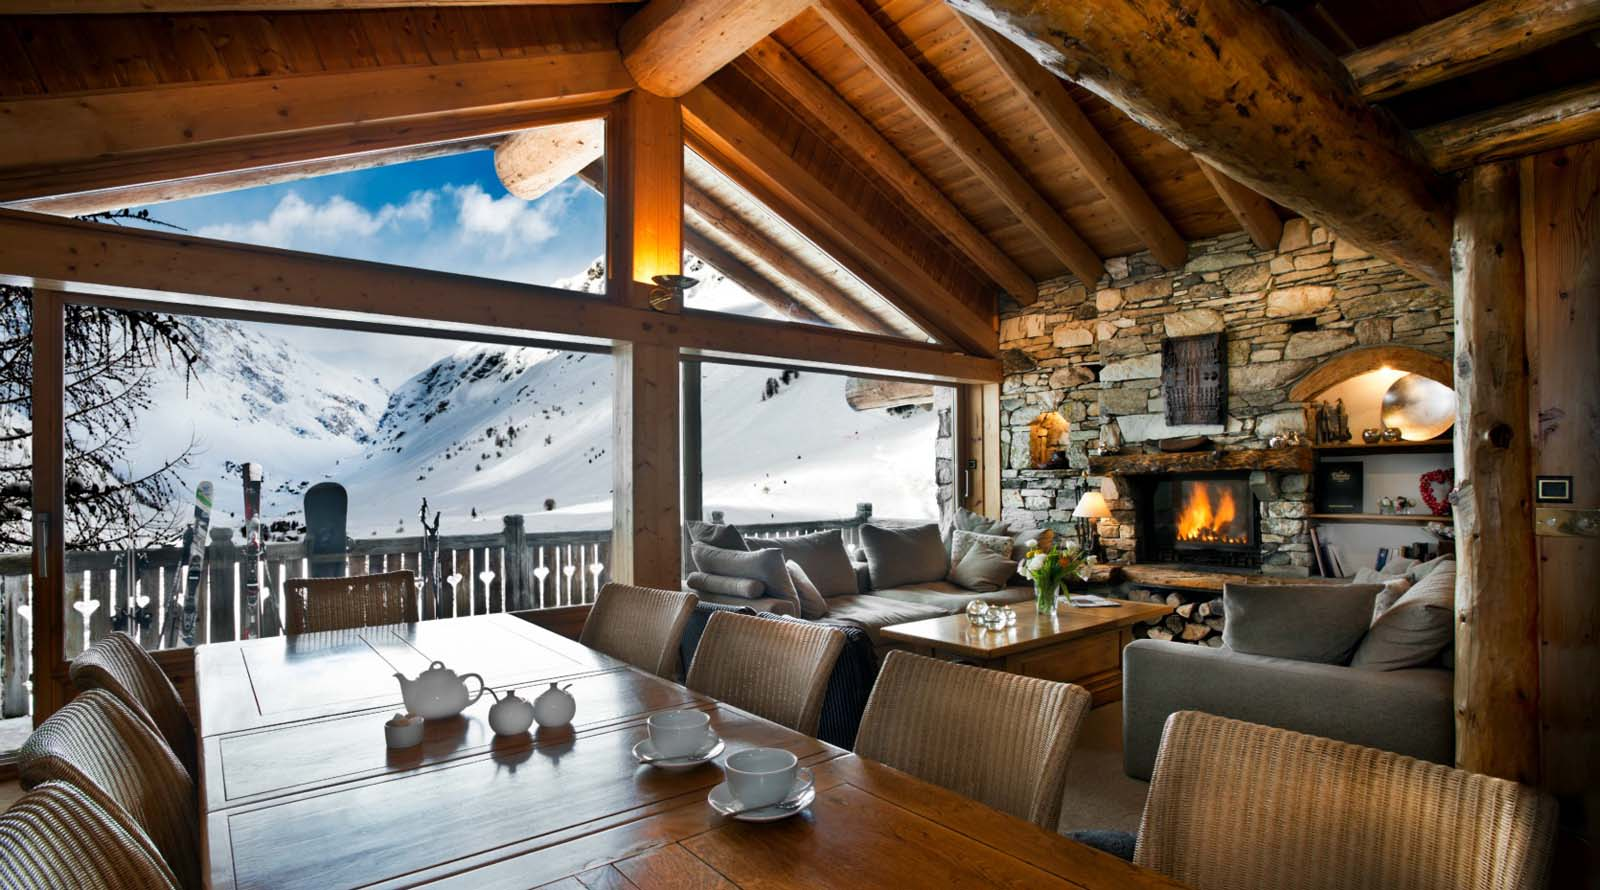 chalet lafitenia in val d isere by skiboutique